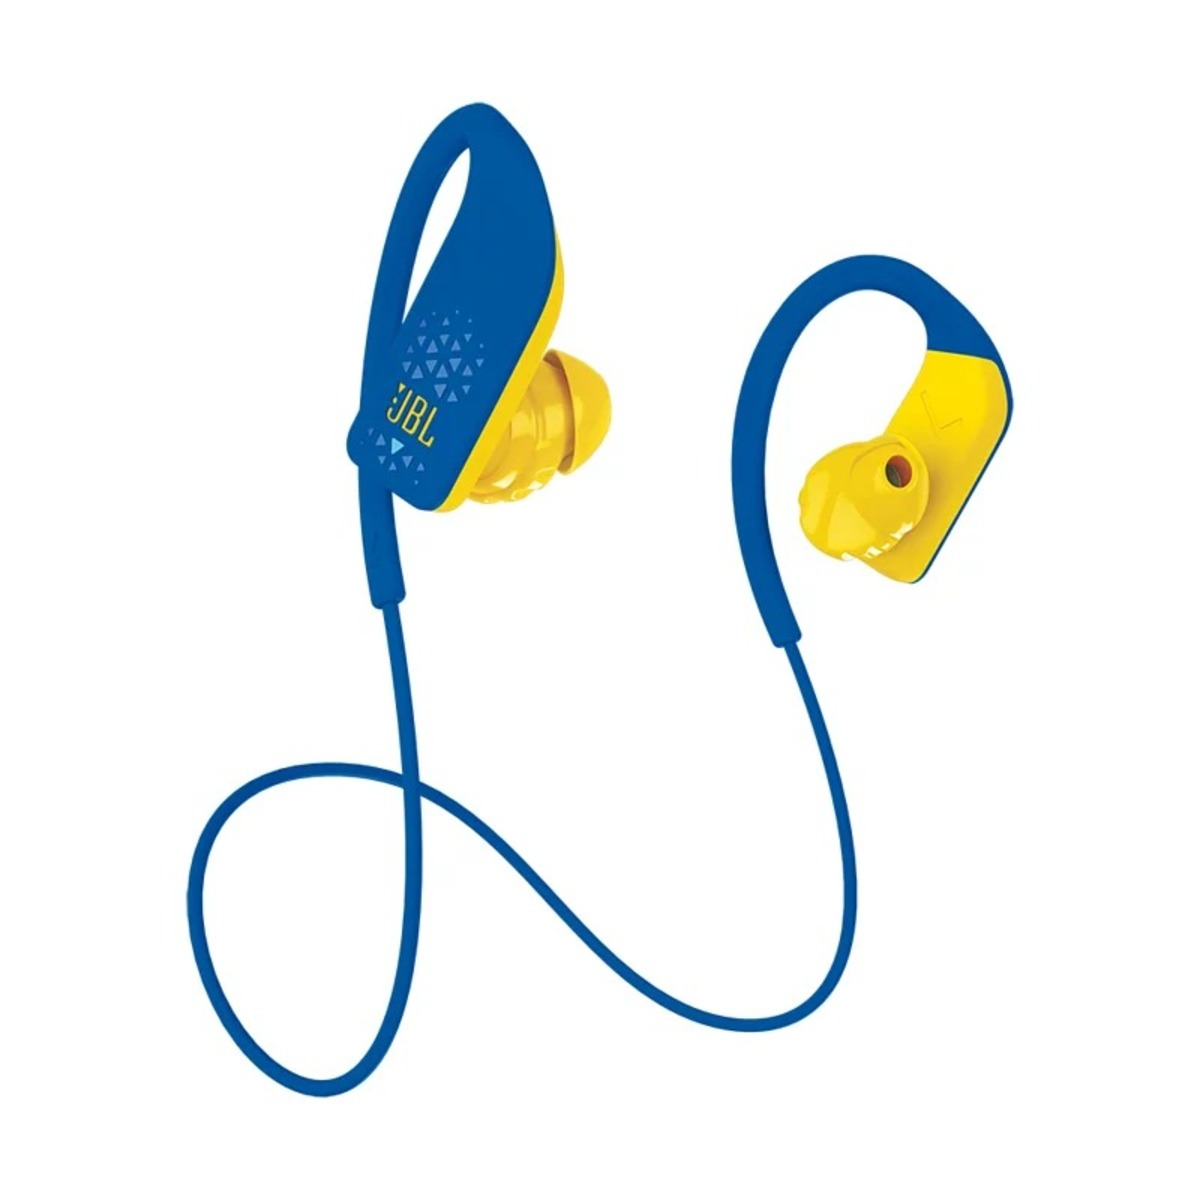 JBL Grip 500 Wireless In-Ear Sport Headphones / Blue (Hong Kong licensed Product)